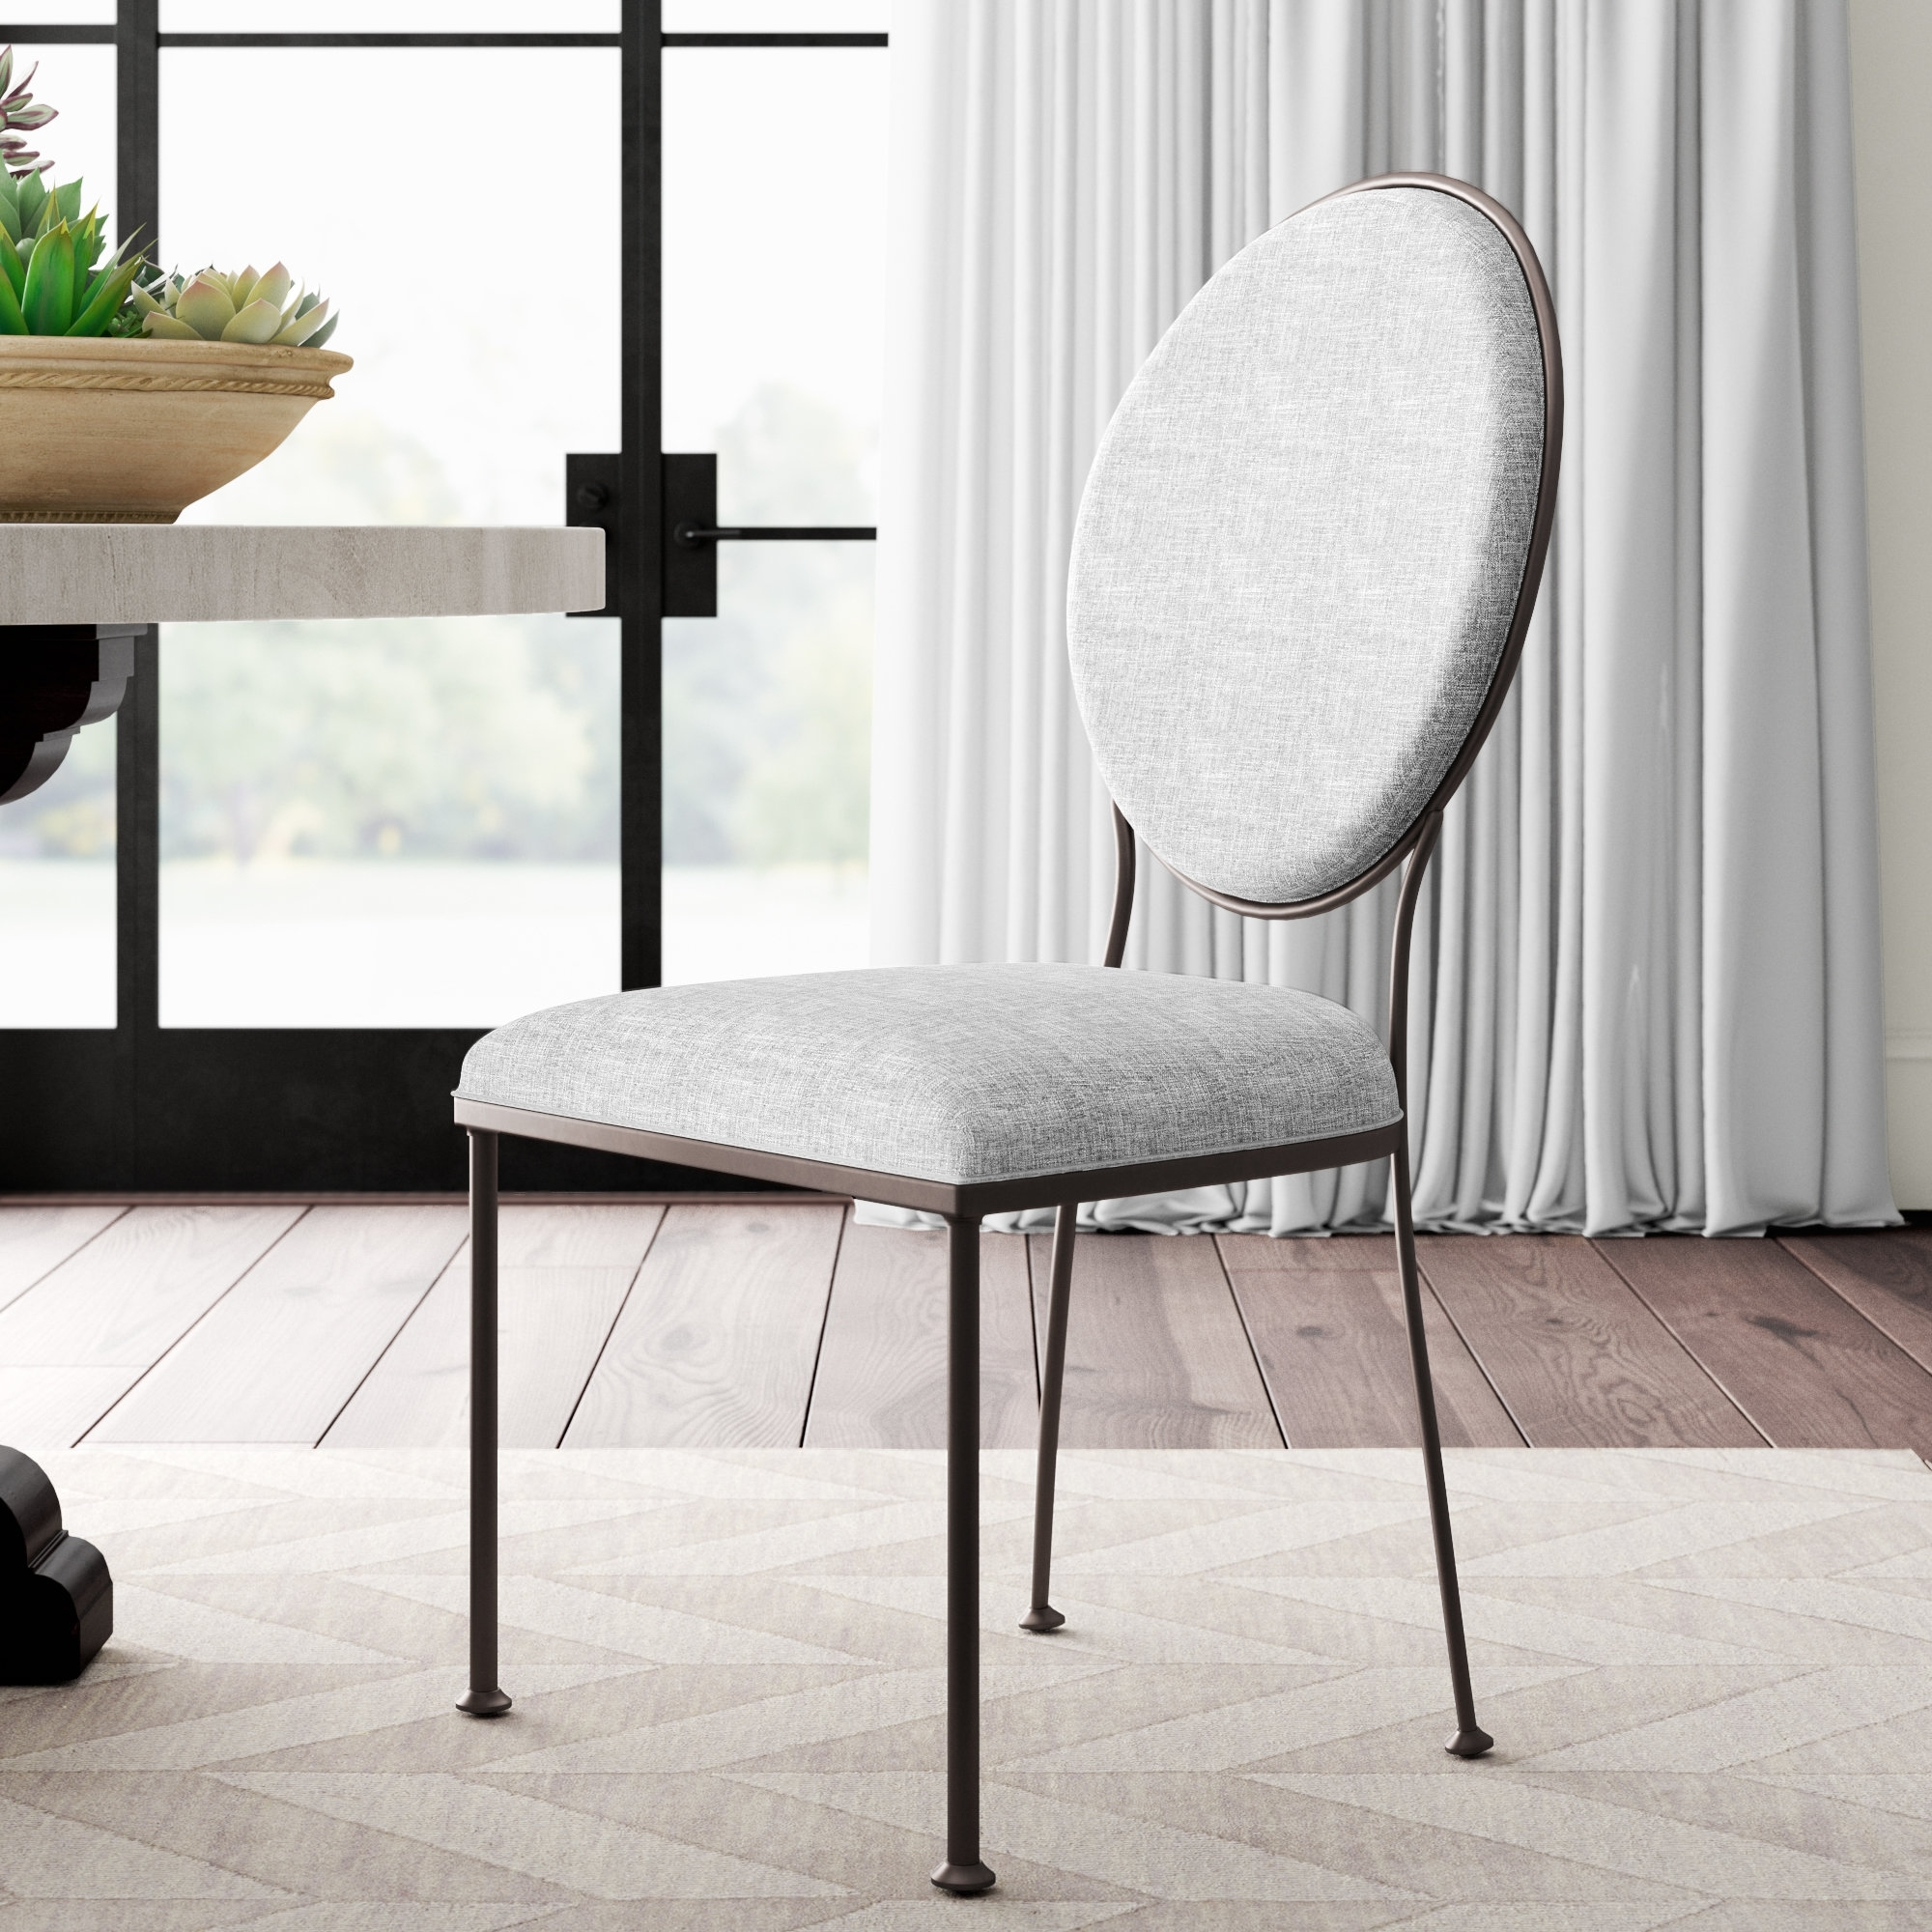 Greyleigh Cairo Oval Back Upholstered Dining Chair | Wayfair With Regard To Most Recent Caira Black 7 Piece Dining Sets With Upholstered Side Chairs (Image 11 of 20)